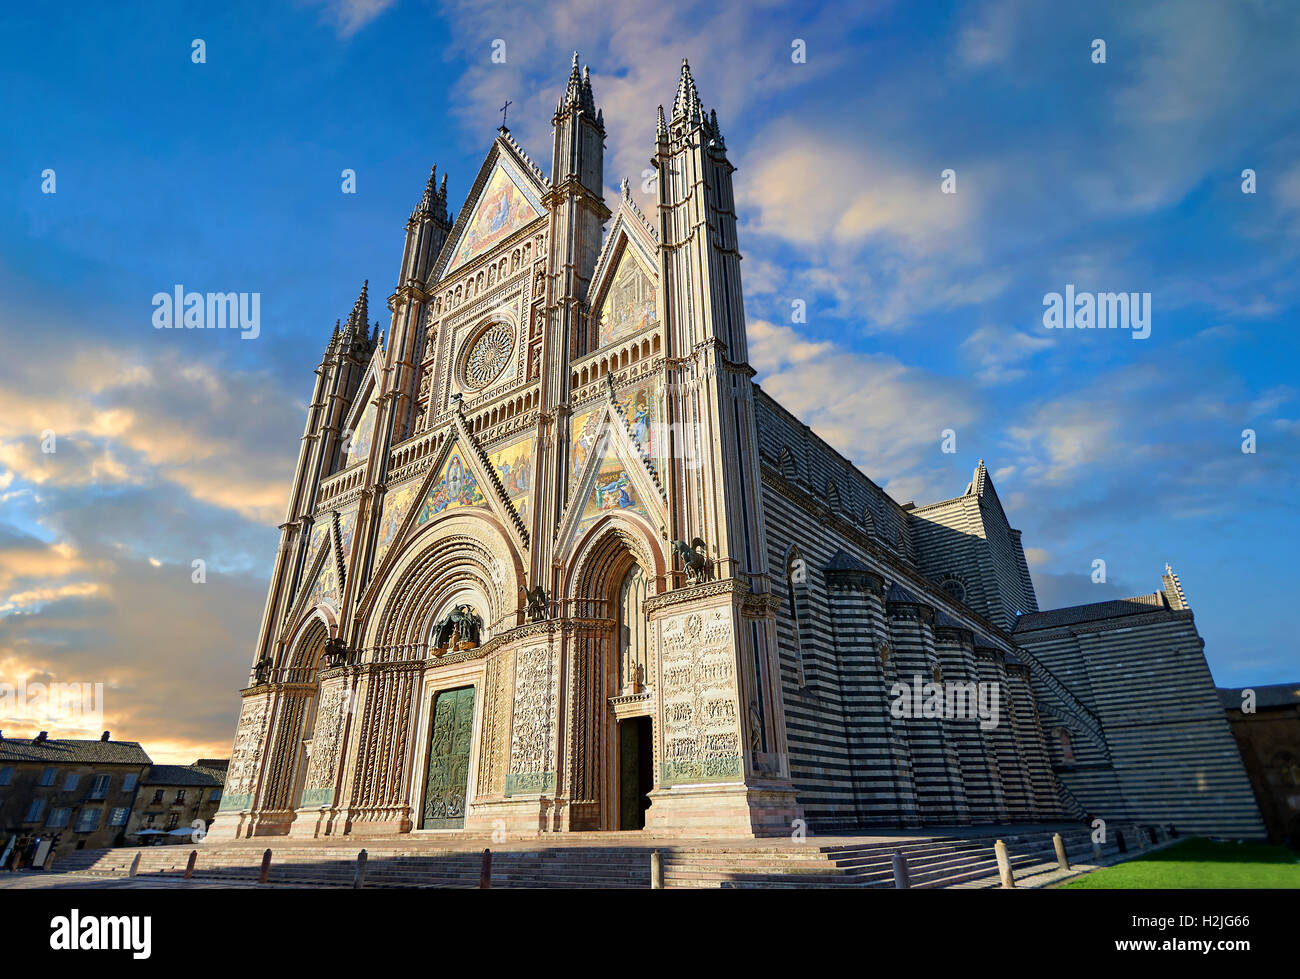 14th century Tuscan Gothic style facade of the Cathedral of Orvieto, Umbria, Italy - Stock Image